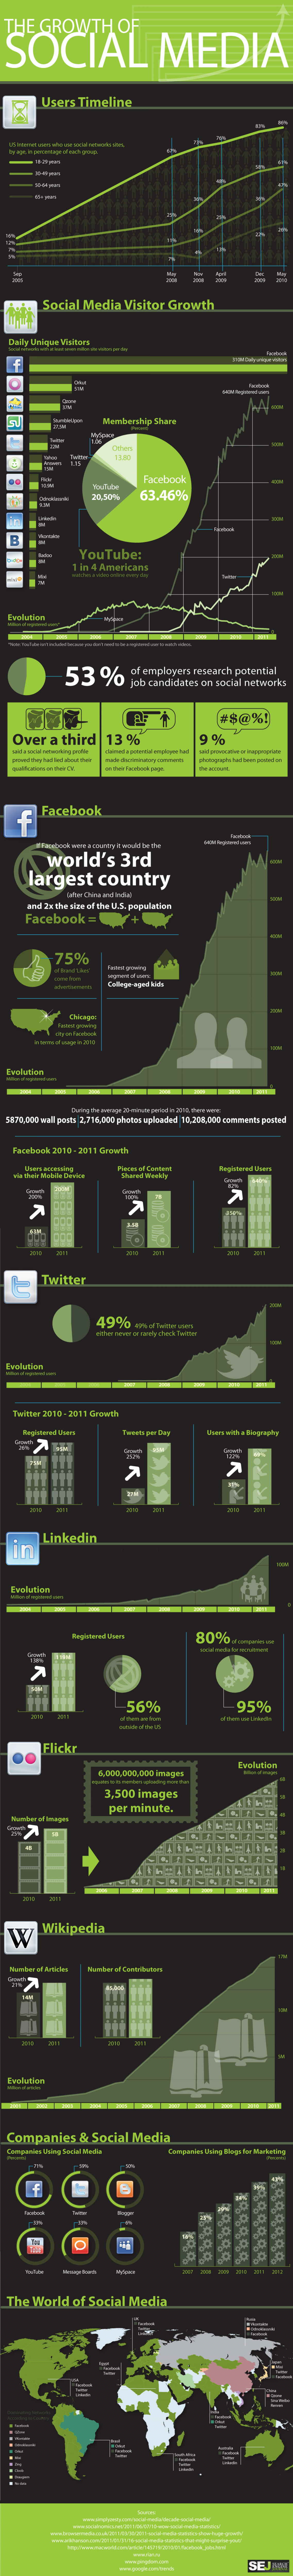 SocialWayne - mobile site web portal for iphone, blackberry ... Infographic